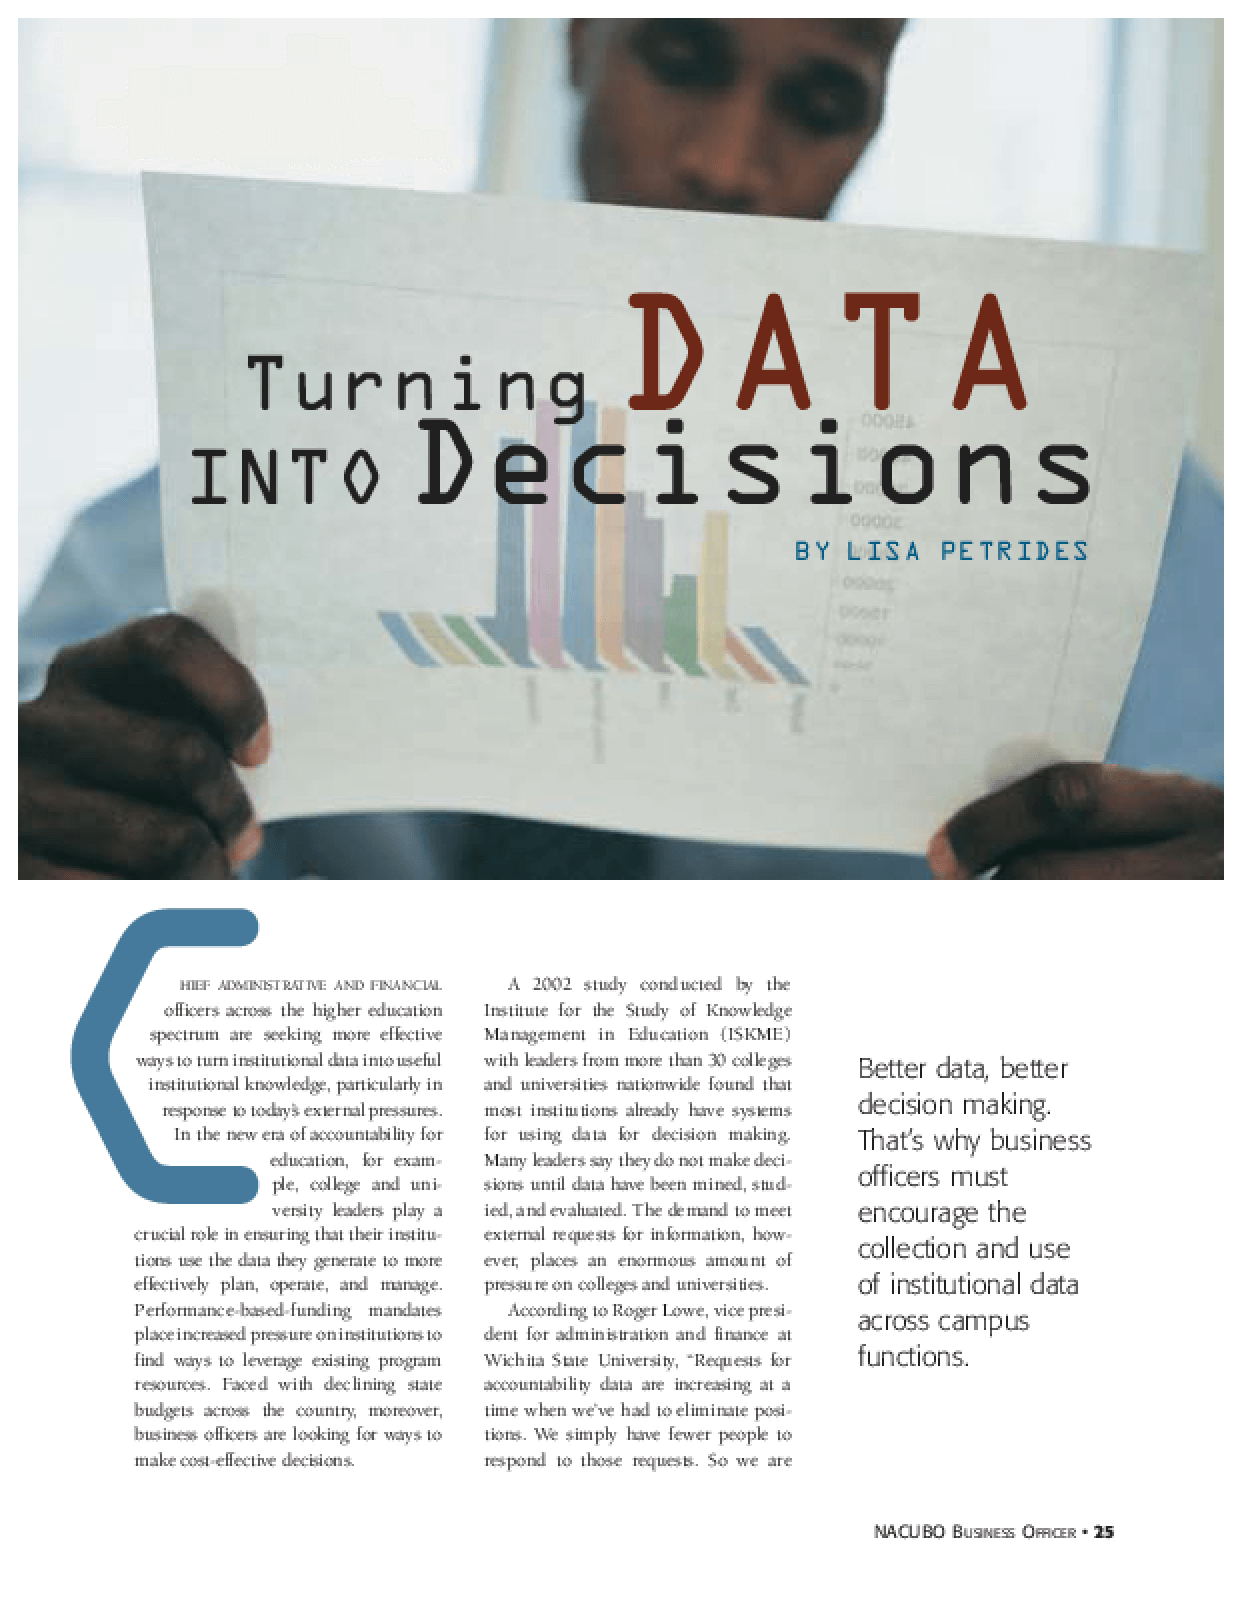 Turning Data into Decisions